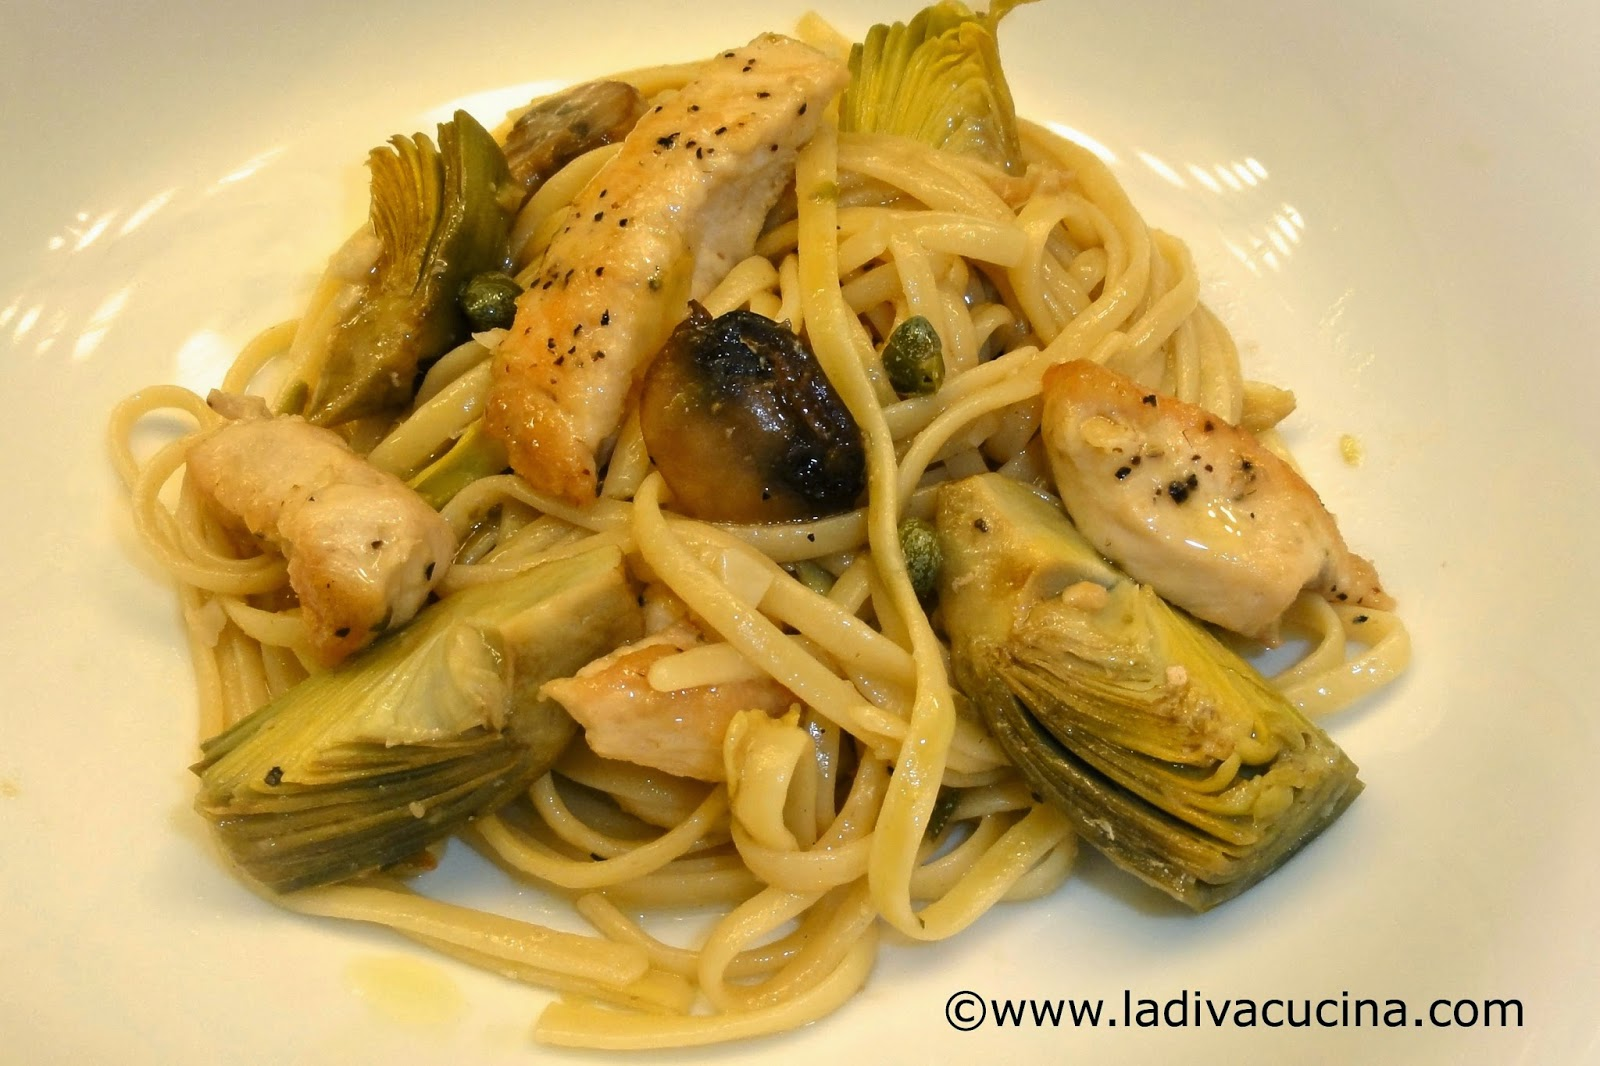 Baby artichoke sauteed with chicken breast, mushrooms, garlic, lemon ...